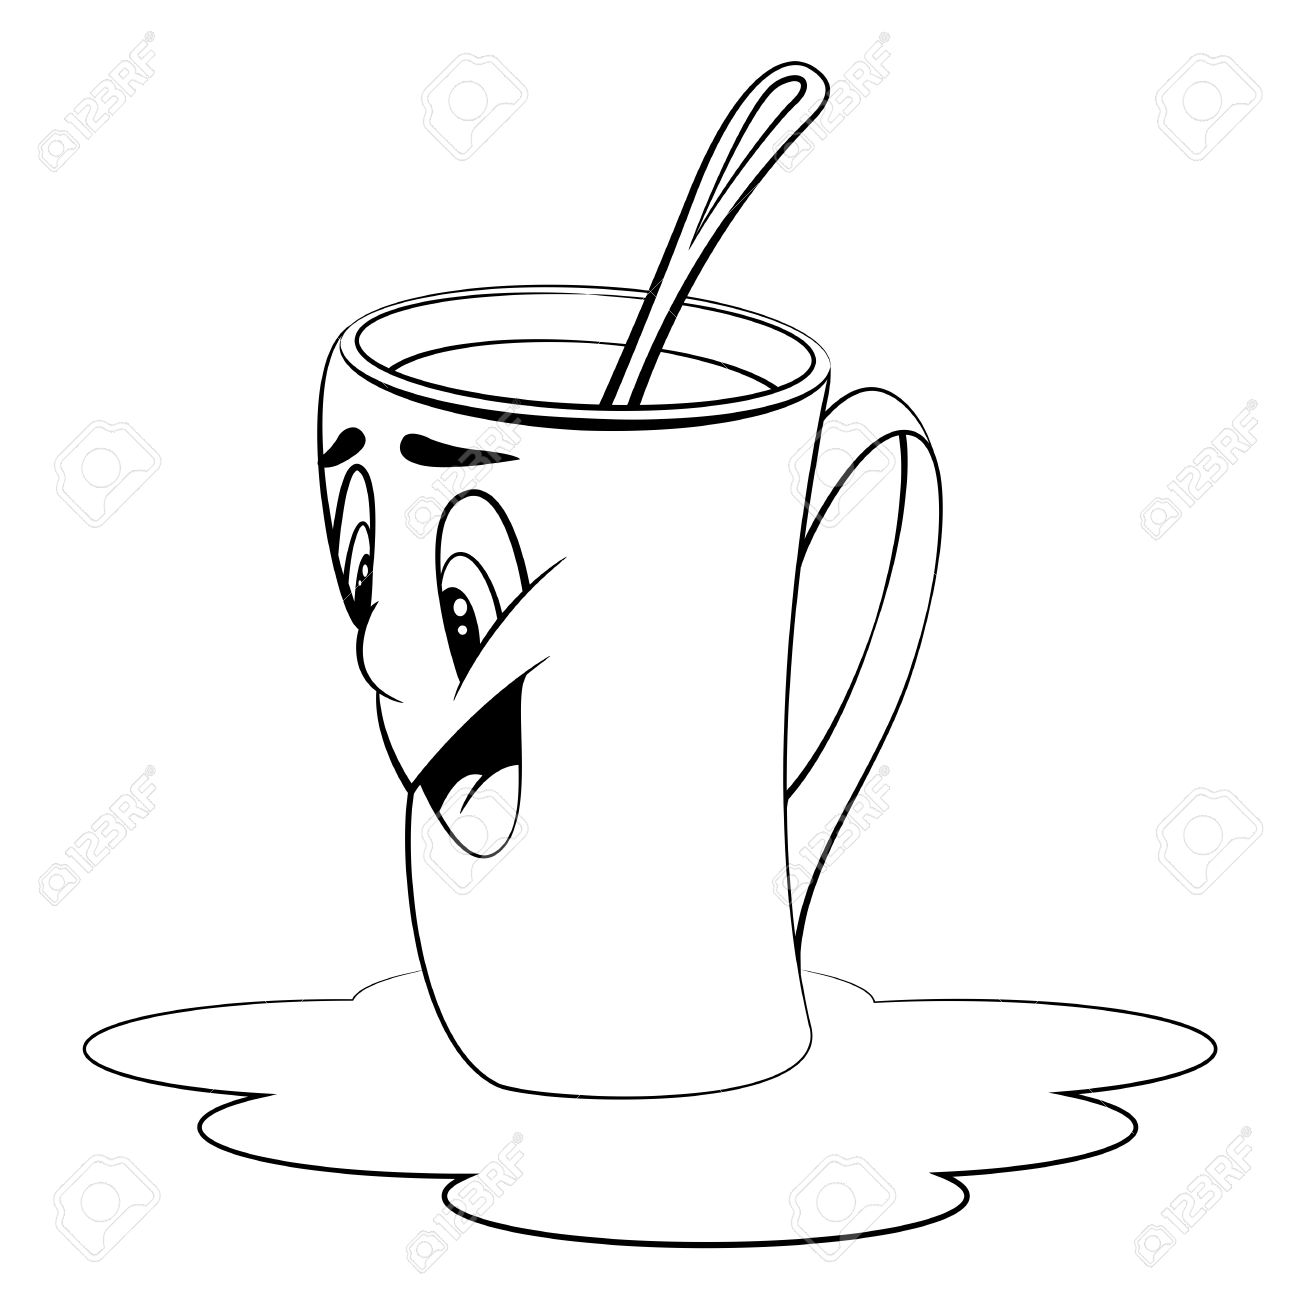 1300x1300 Cartoon Cup With Coffee. Mug With Surprised Facial Expression